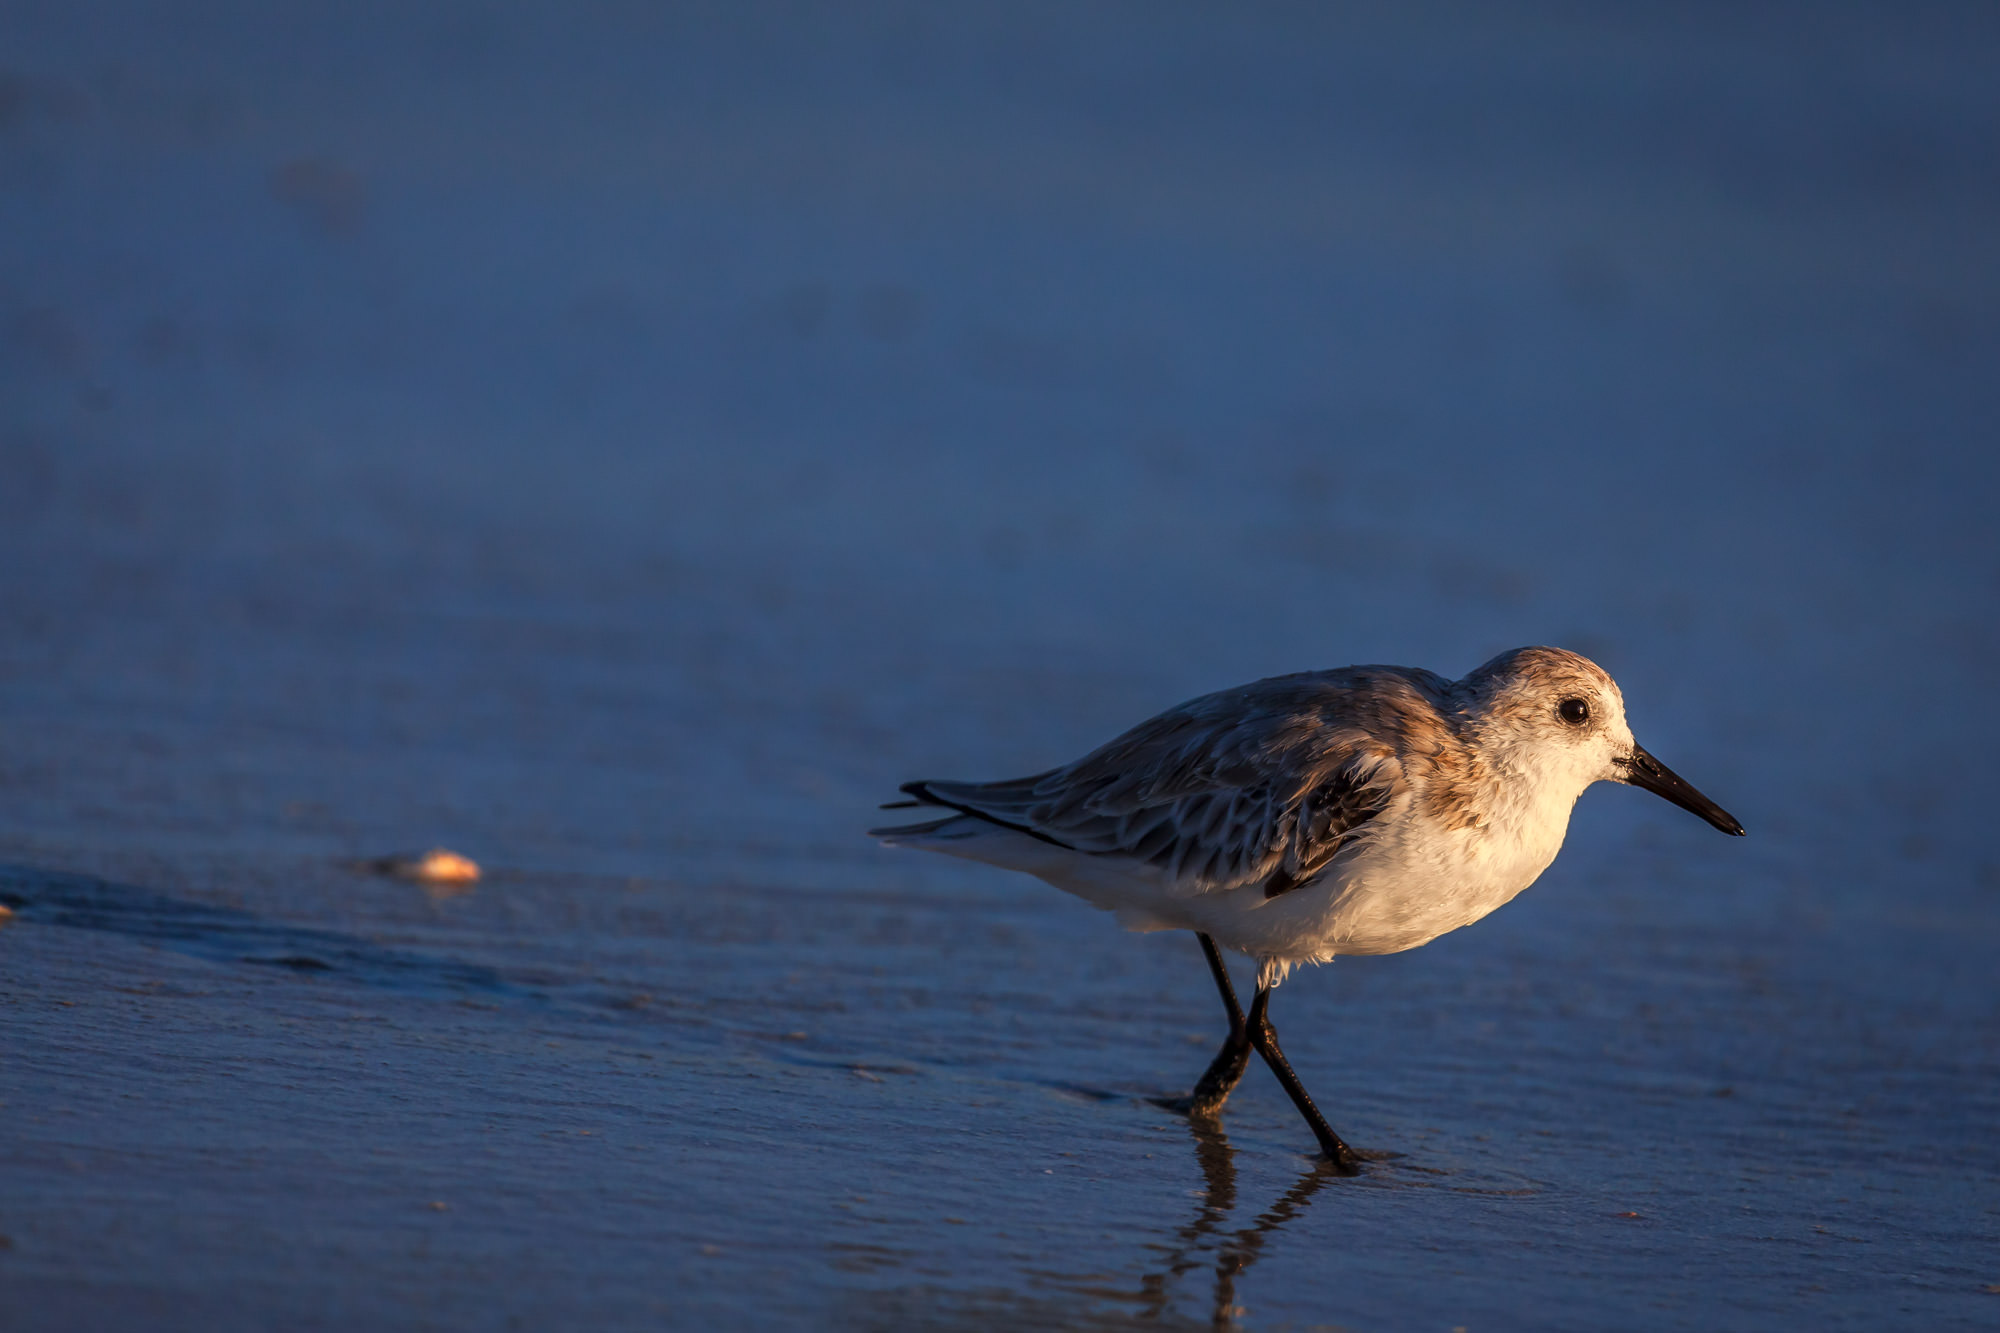 Sandpiper, Florida, beach, limited edition, photograph, photo